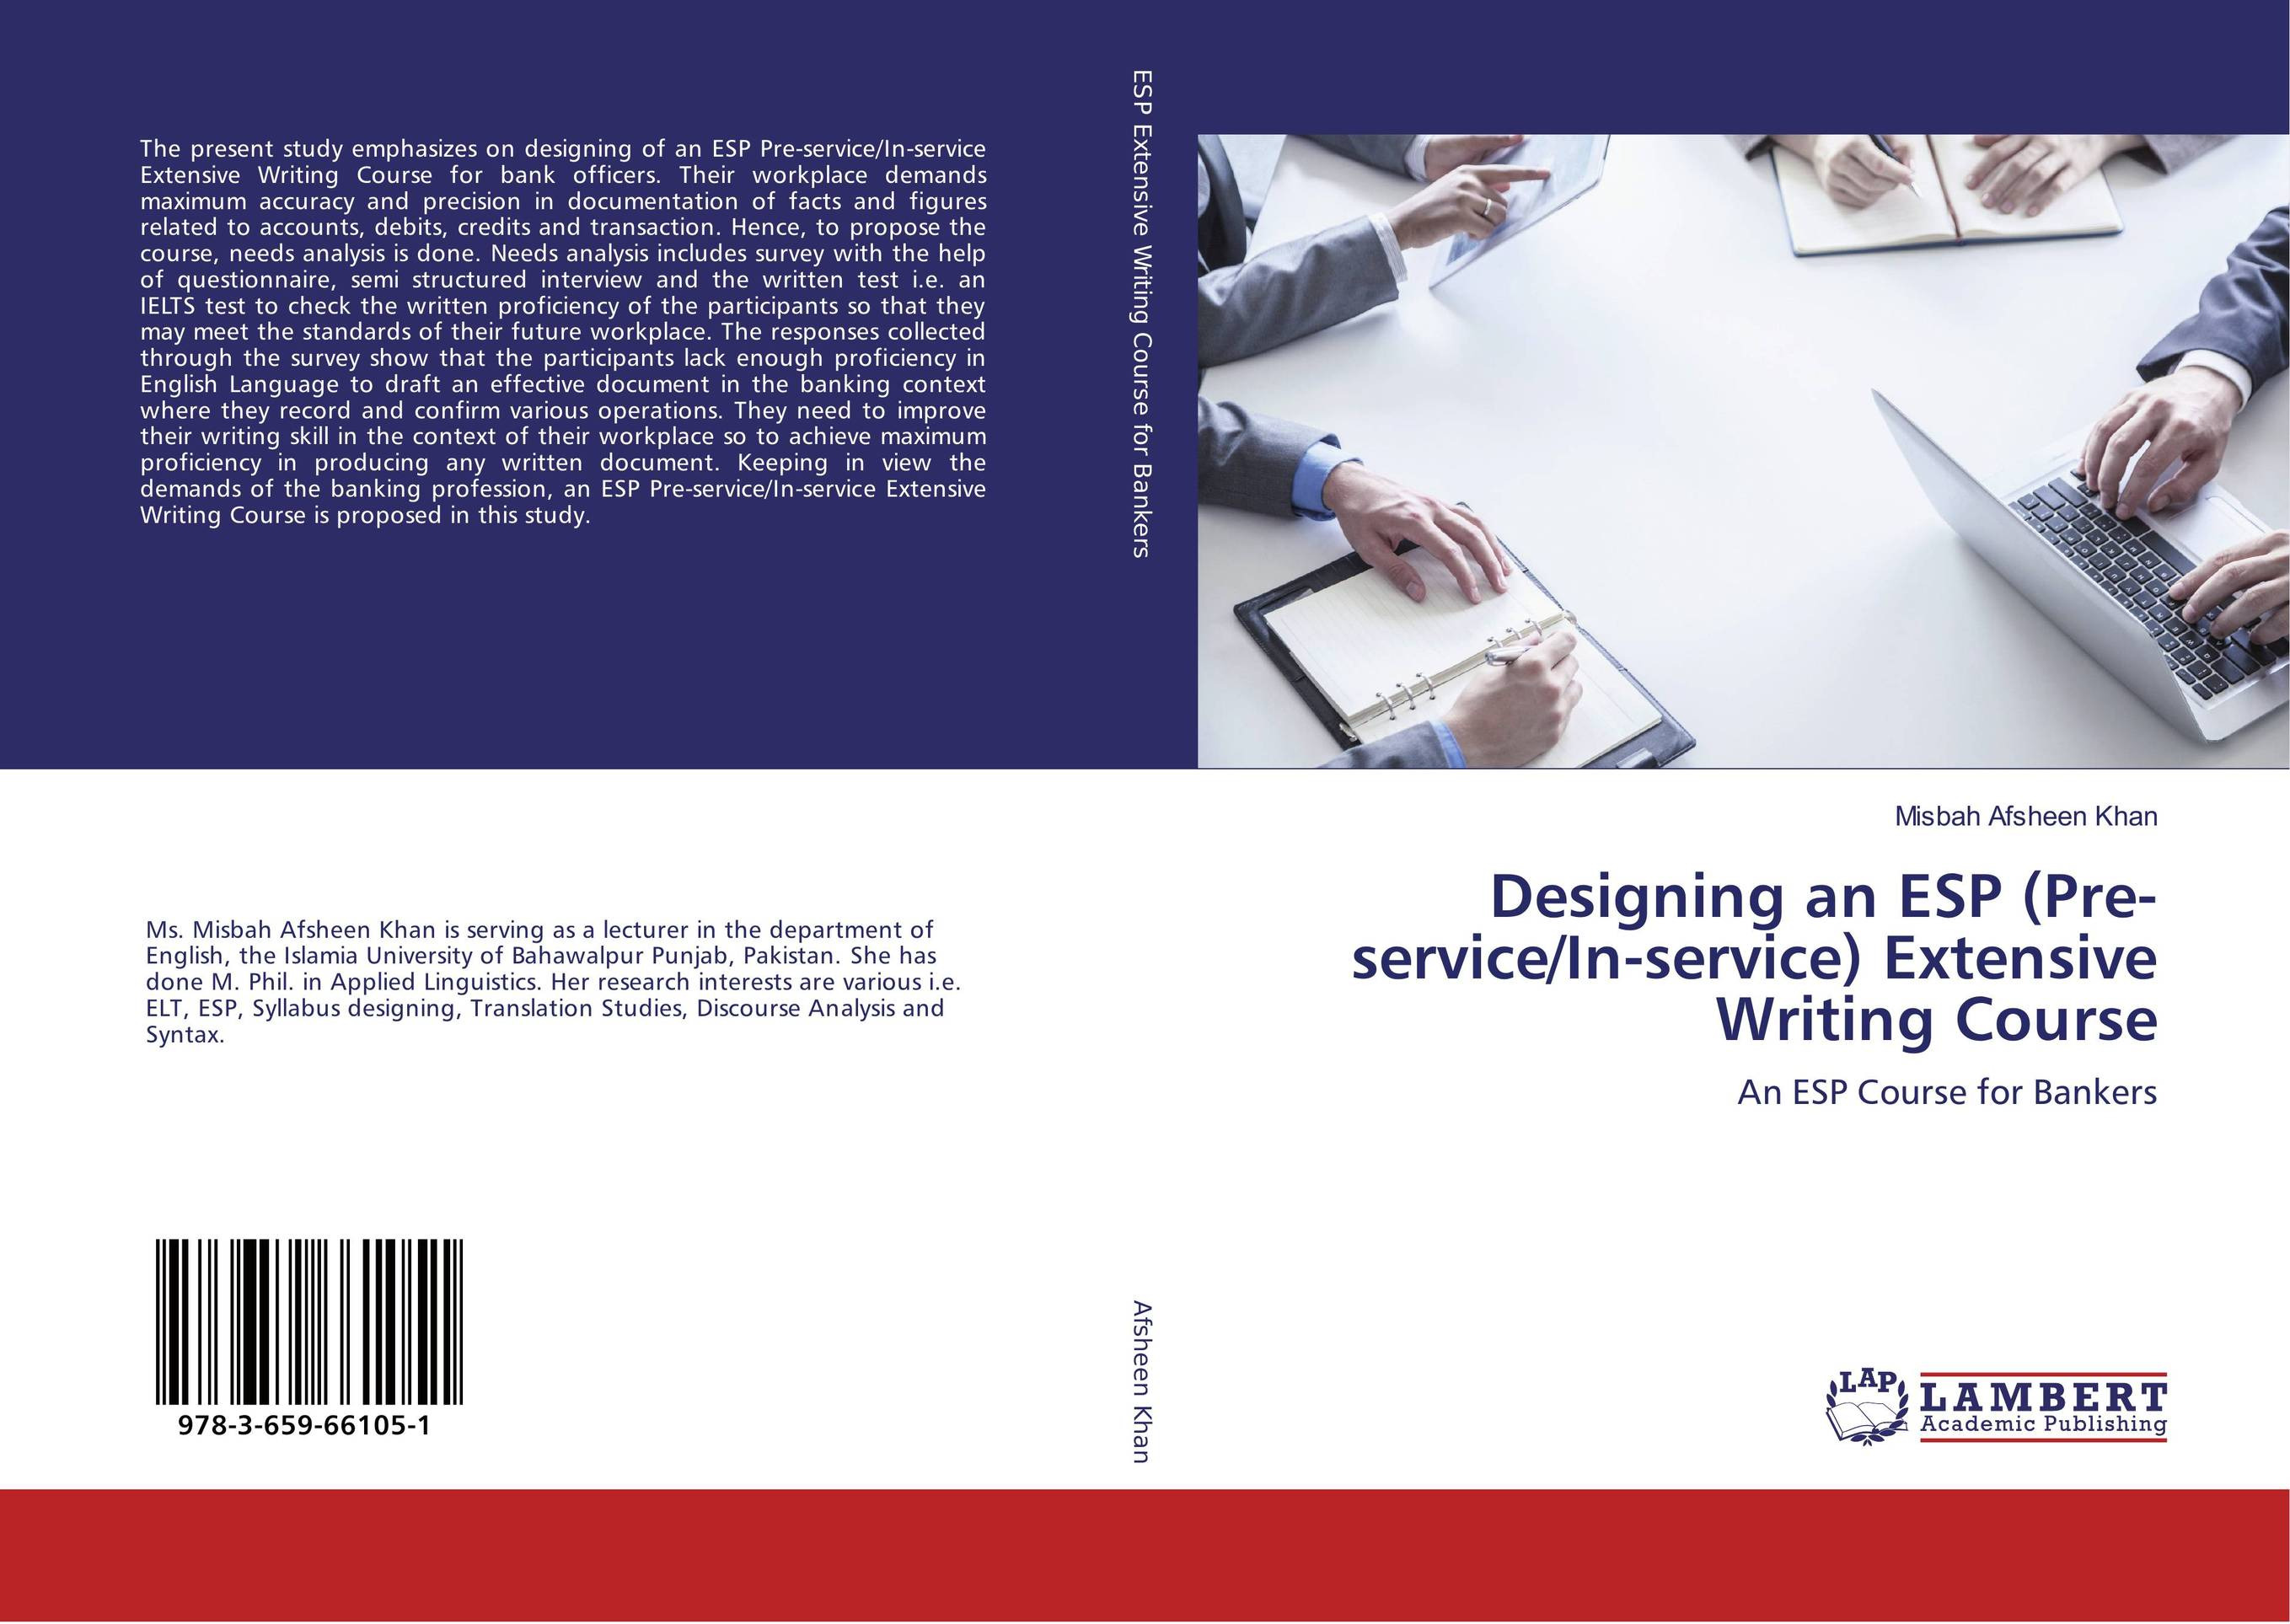 Designing an ESP (Pre-service/In-service) Extensive Writing Course